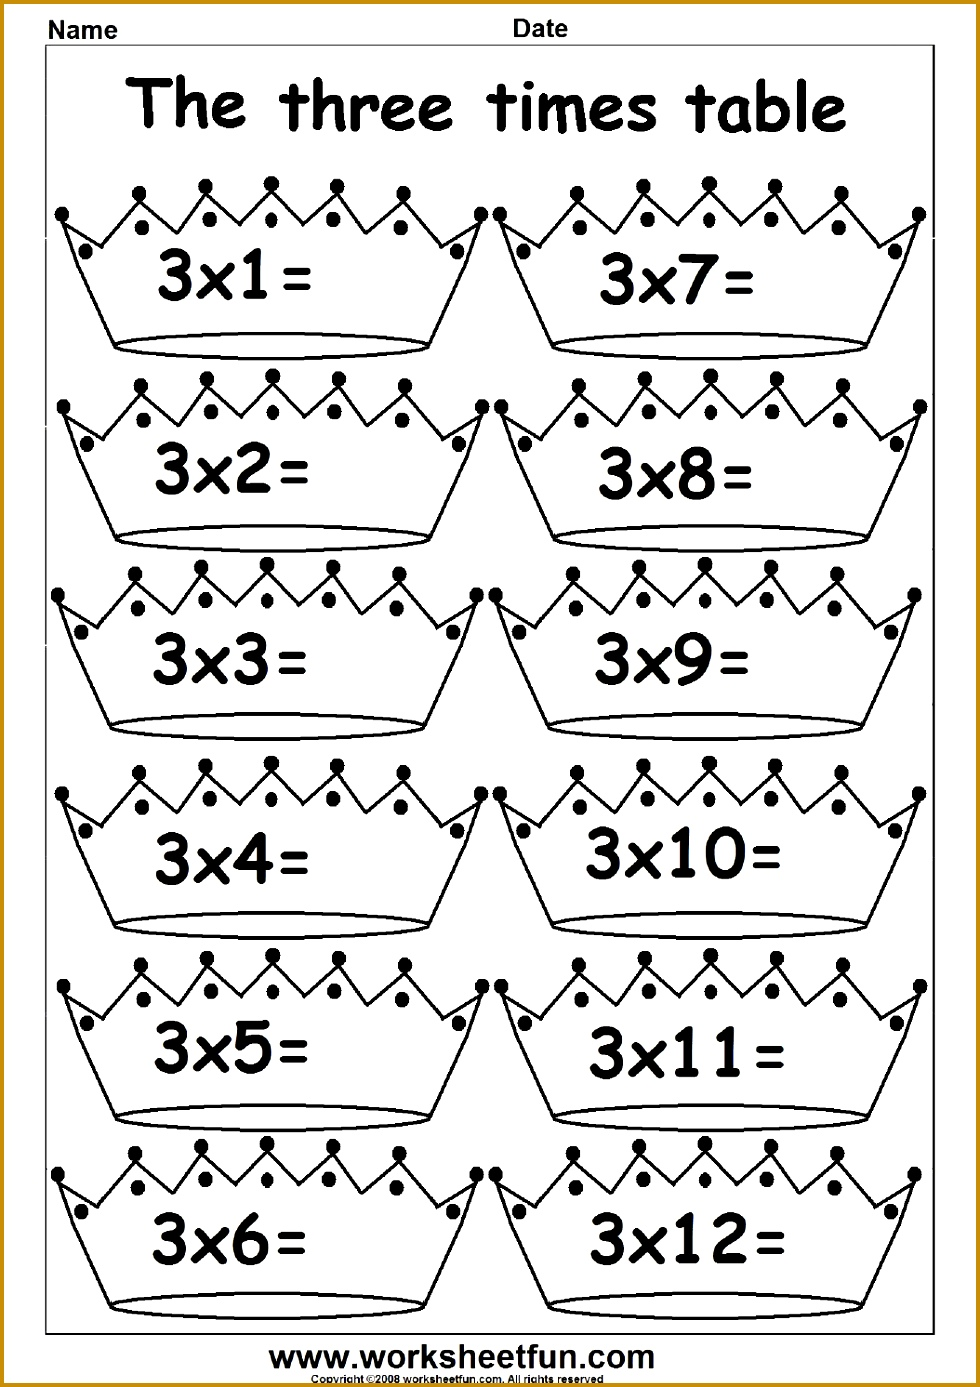 11 and 12 Times Table Fun times table worksheets 1387980